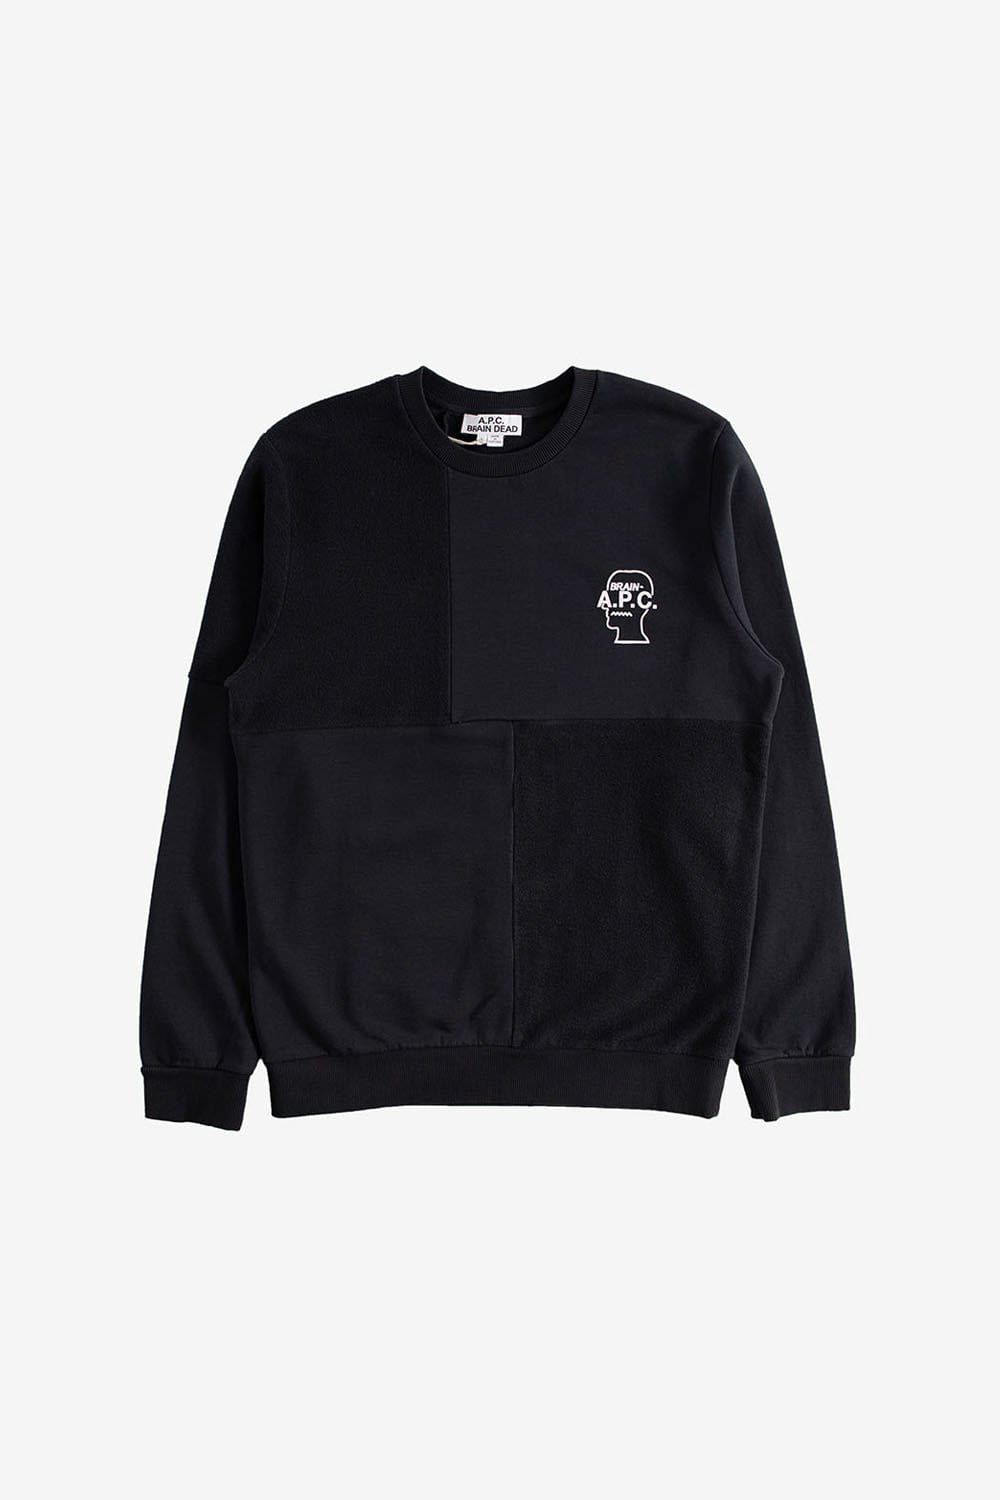 A.P.C. Apparel x Brain Dead Pony Sweatshirt